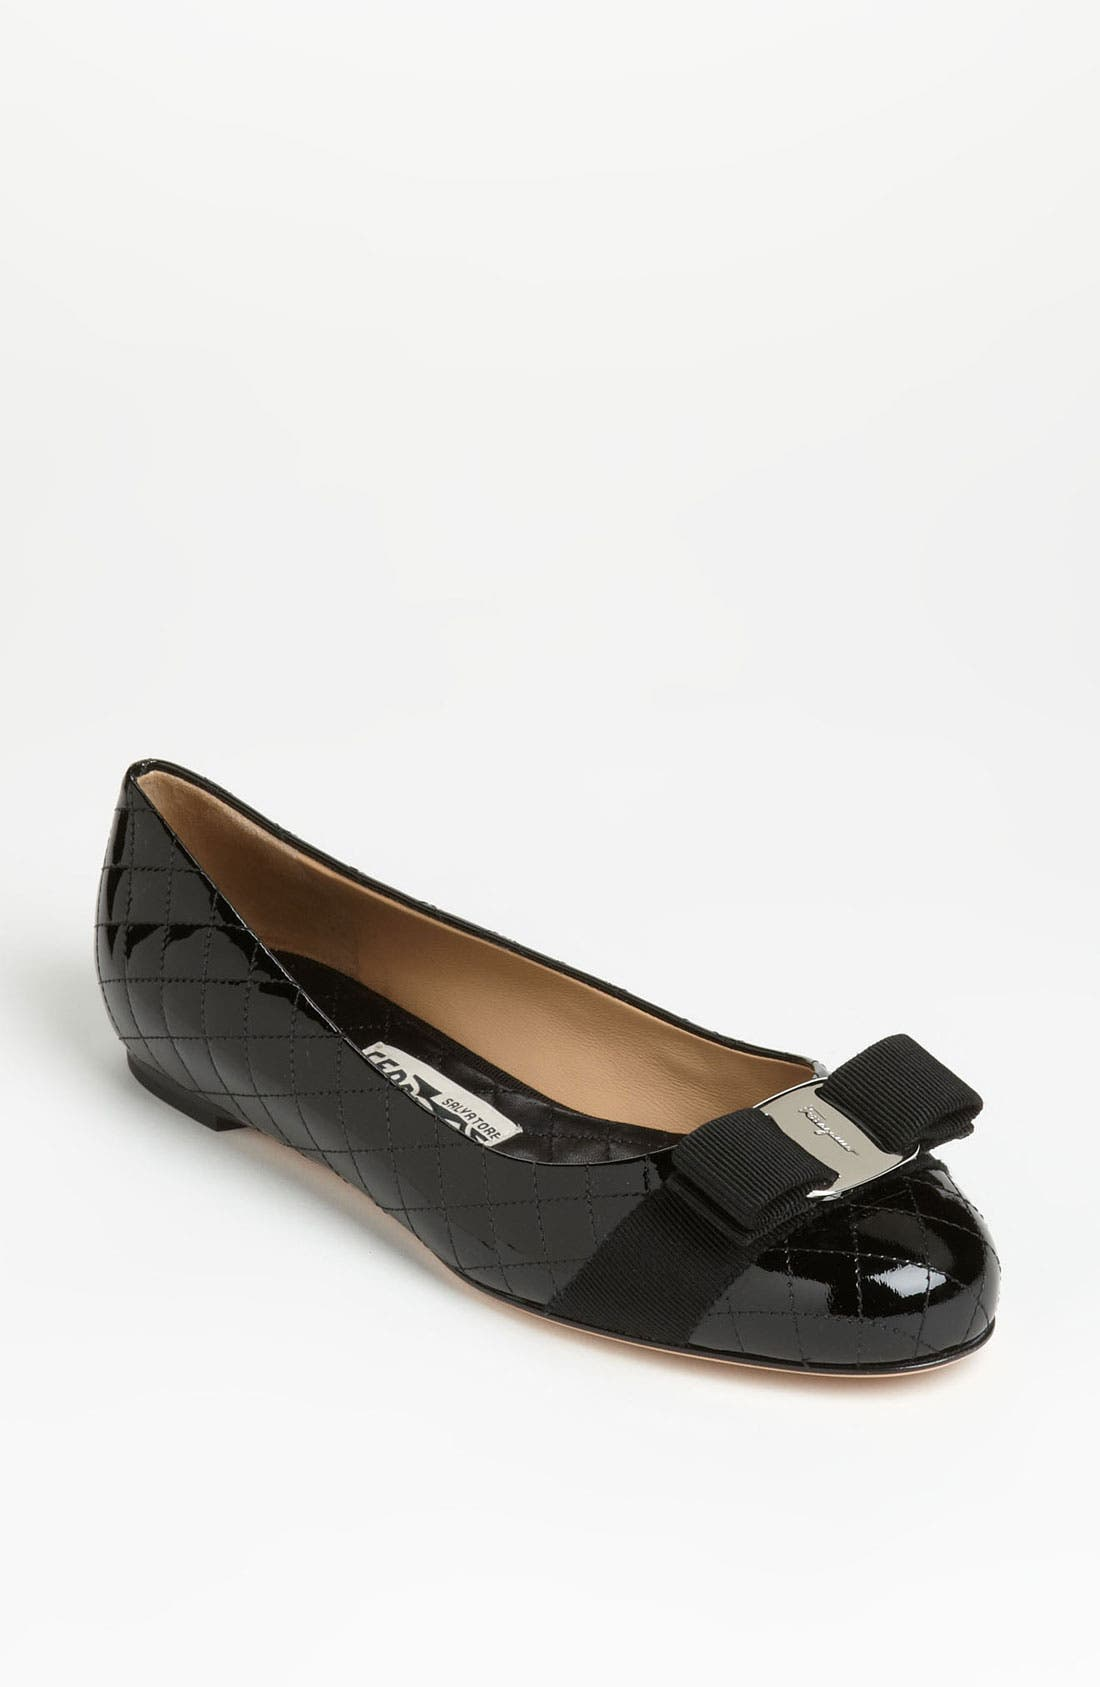 Alternate Image 1 Selected - Salvatore Ferragamo 'Isea' Flat